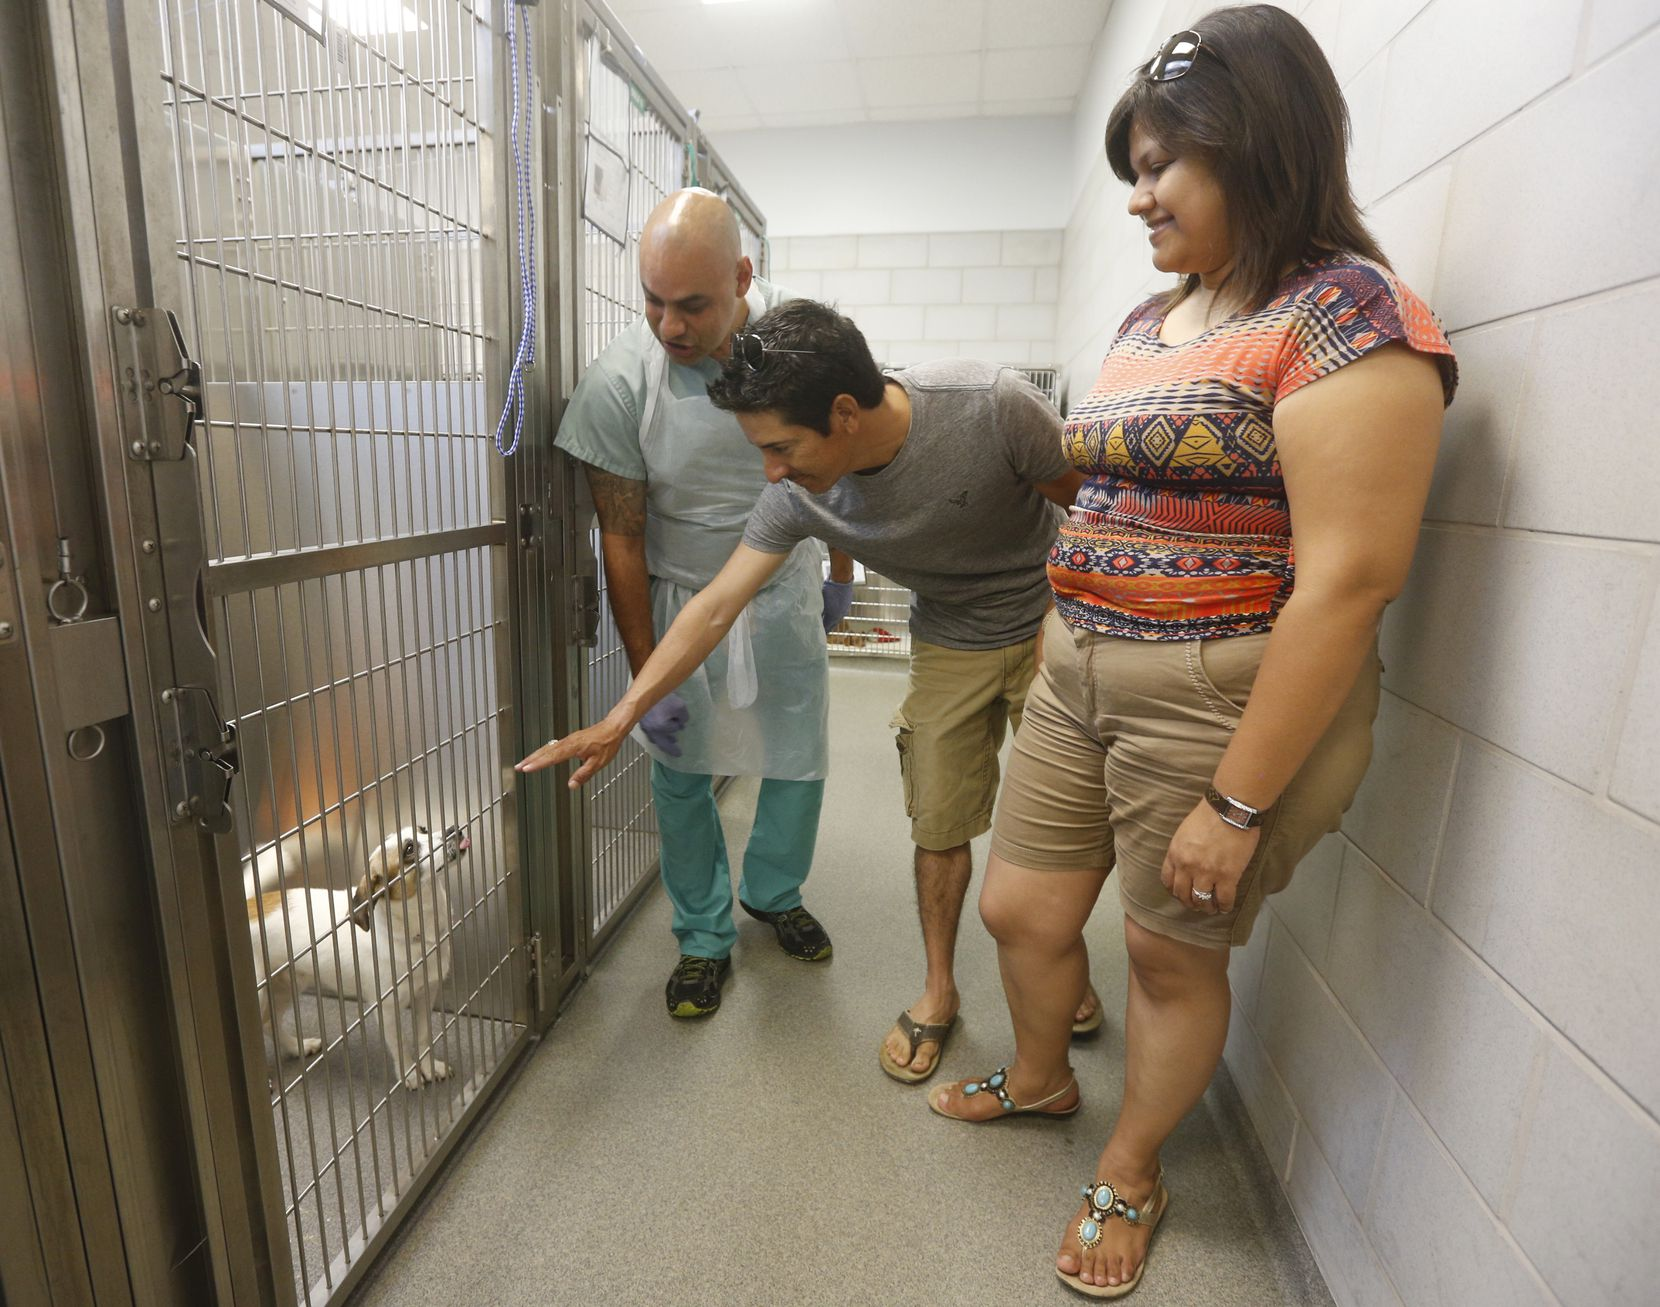 Employee Robert Baker, left, helps Gus and Cindy Camarillo as they look for a dog at Dallas Animal Services.